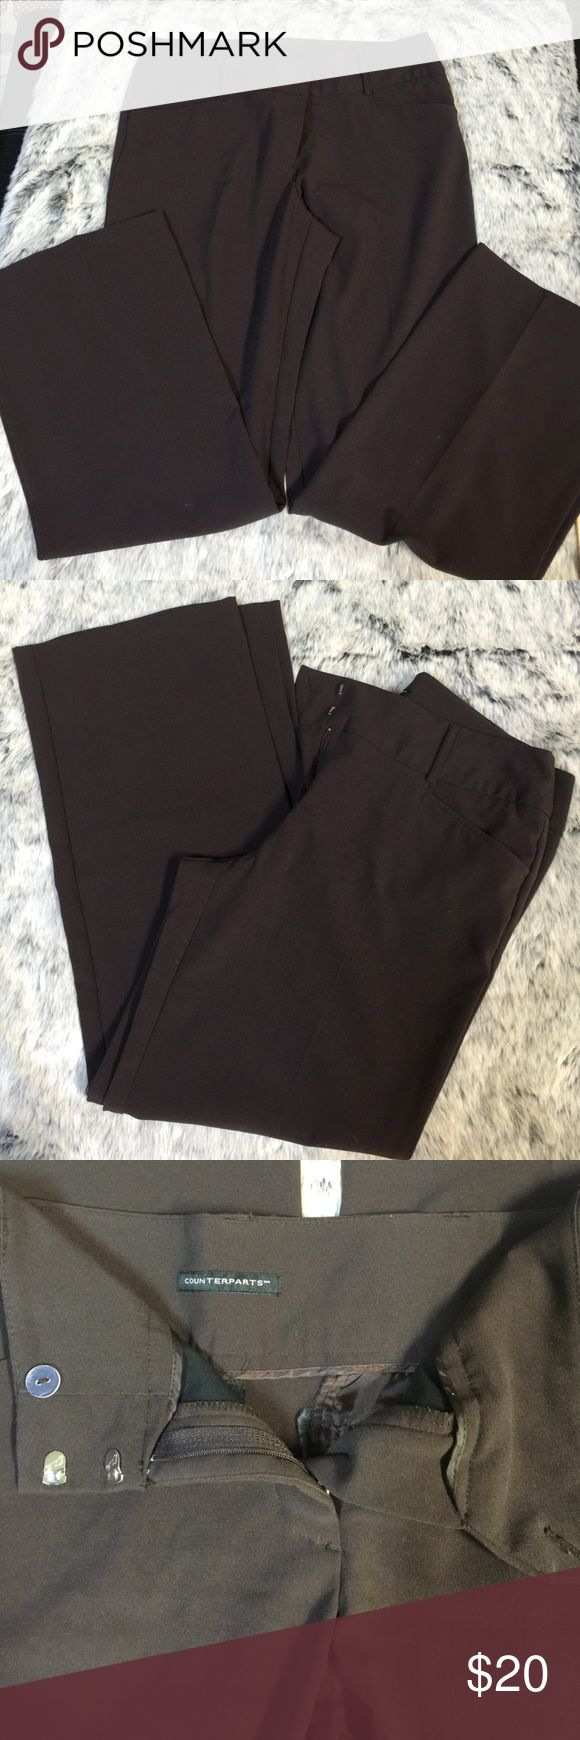 Brown slacks 29 1/2 inseam.  34 waist. Chocolate brown slacks!  Perfect for work!  Poly, rayon, spandex.  Very gently loved. Counterparts  Pants Trousers